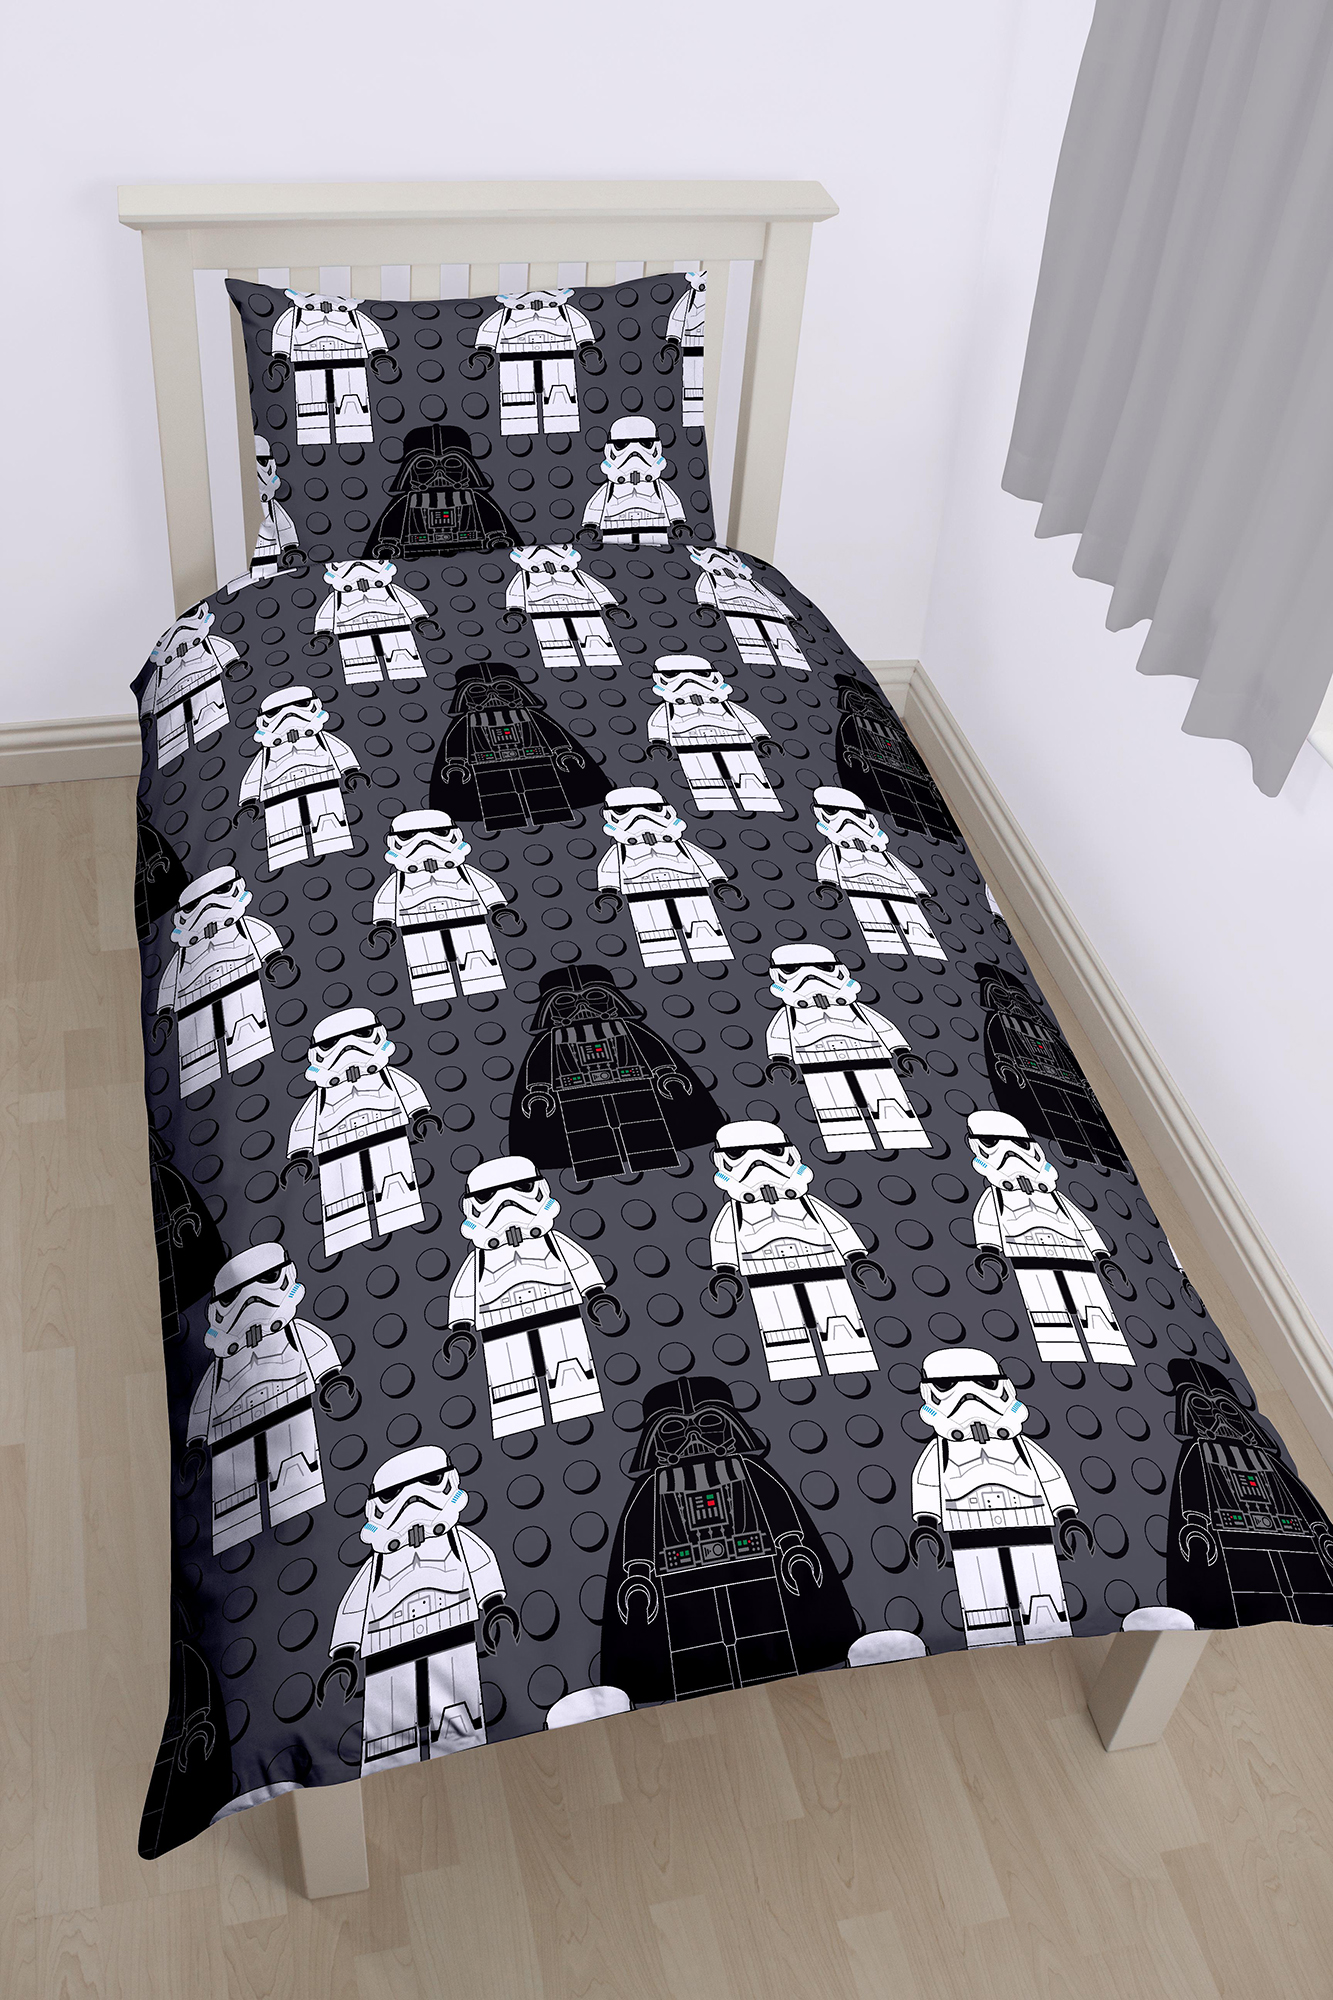 Stormtrooper Bed Sheets Cotton Blend Material Lego Star Wars Villains Boys Single